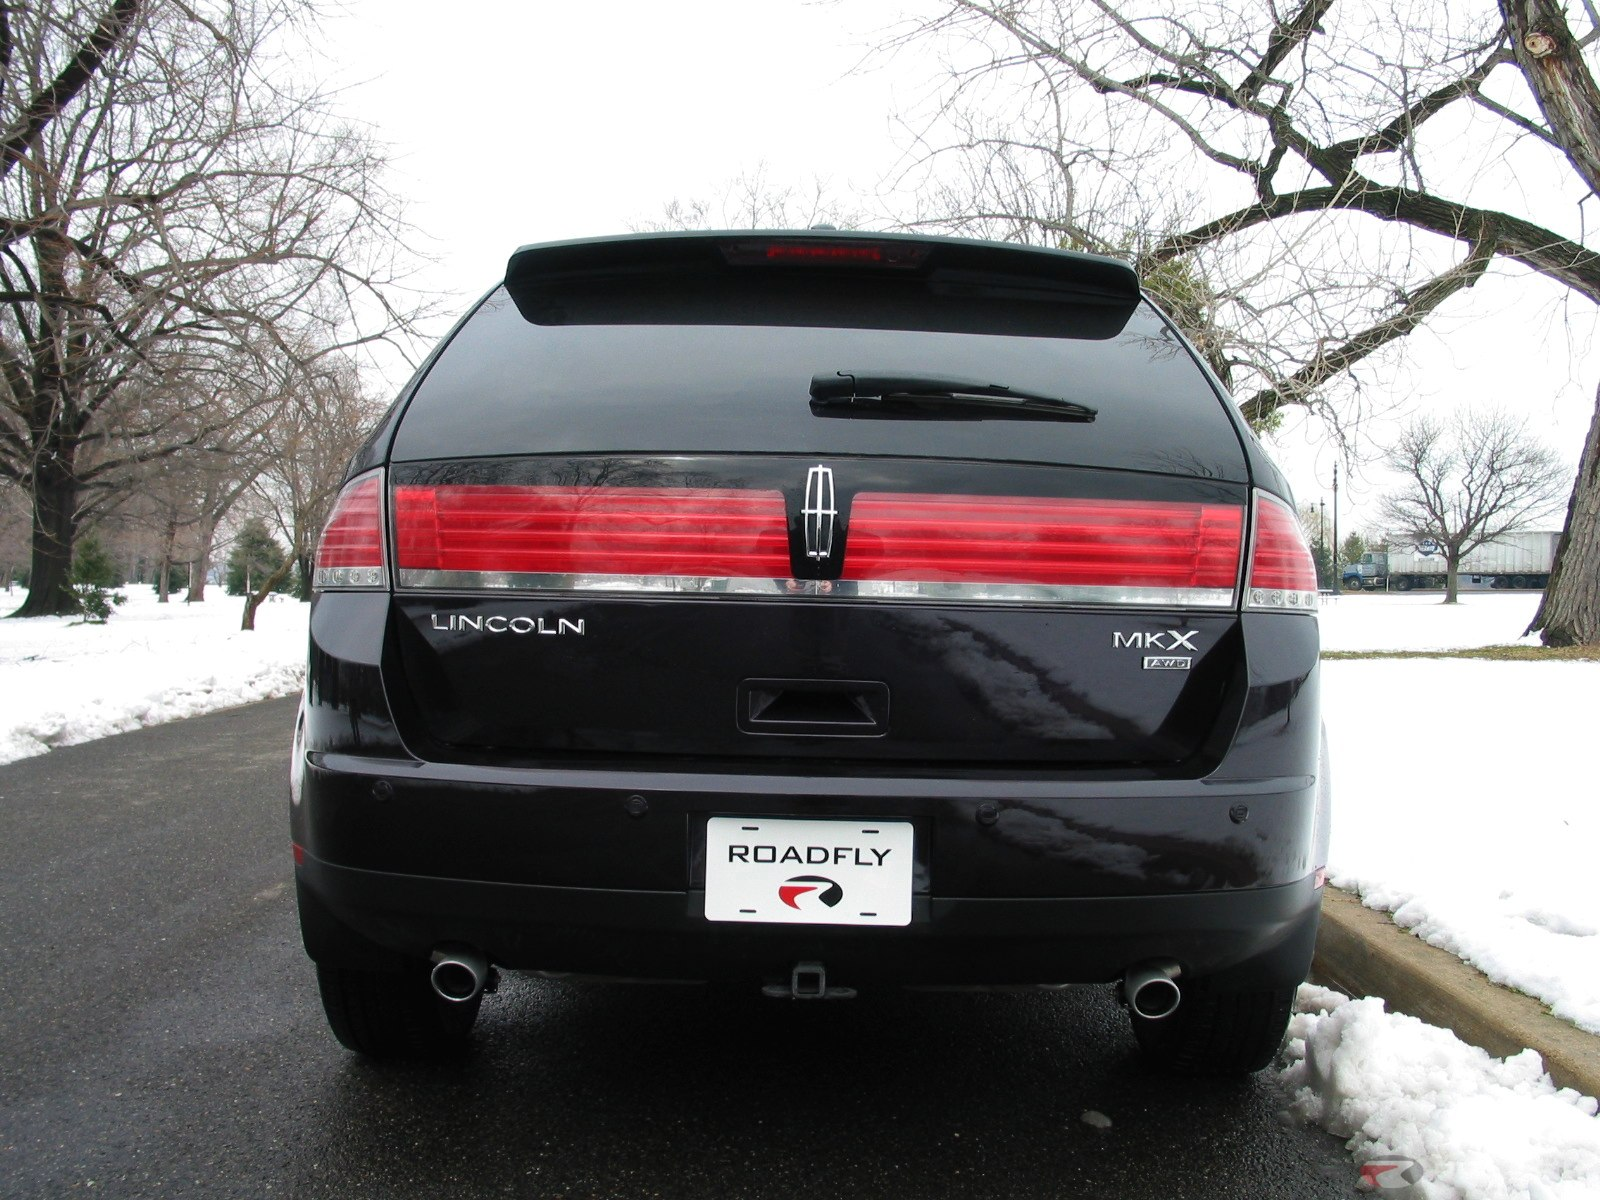 2007 Lincoln Mkx Image 20